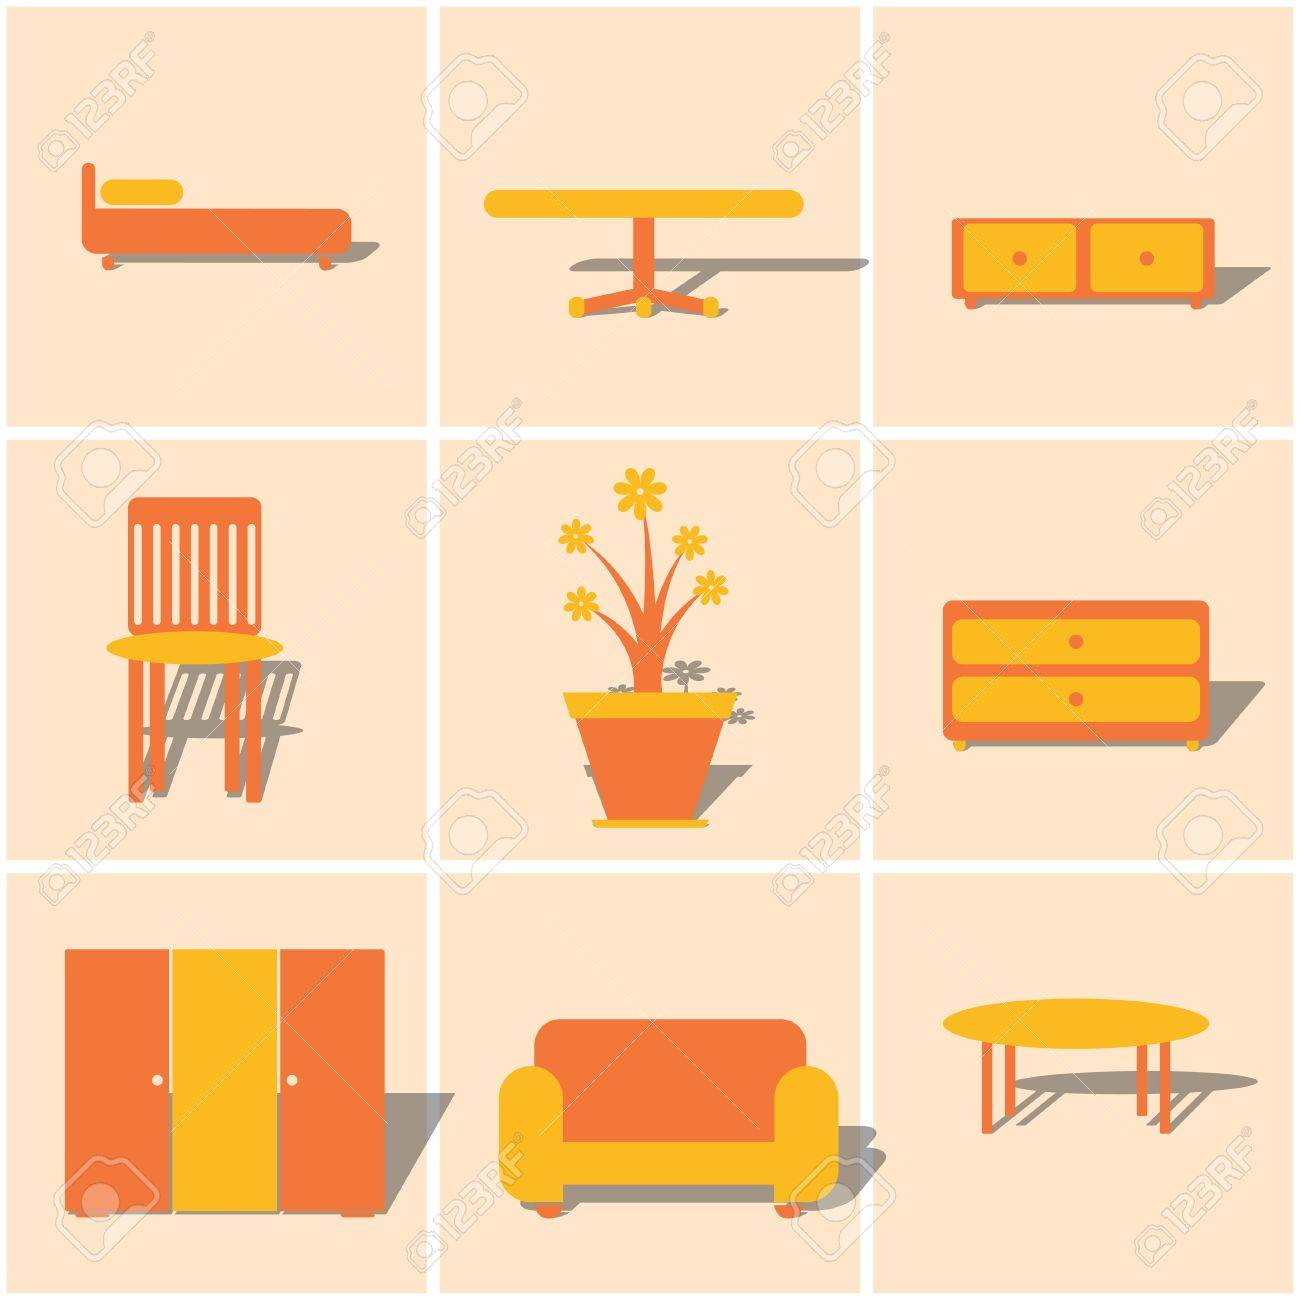 Orange Accessories For Bedroom 618 Bedroom Accessories Stock Illustrations Cliparts And Royalty